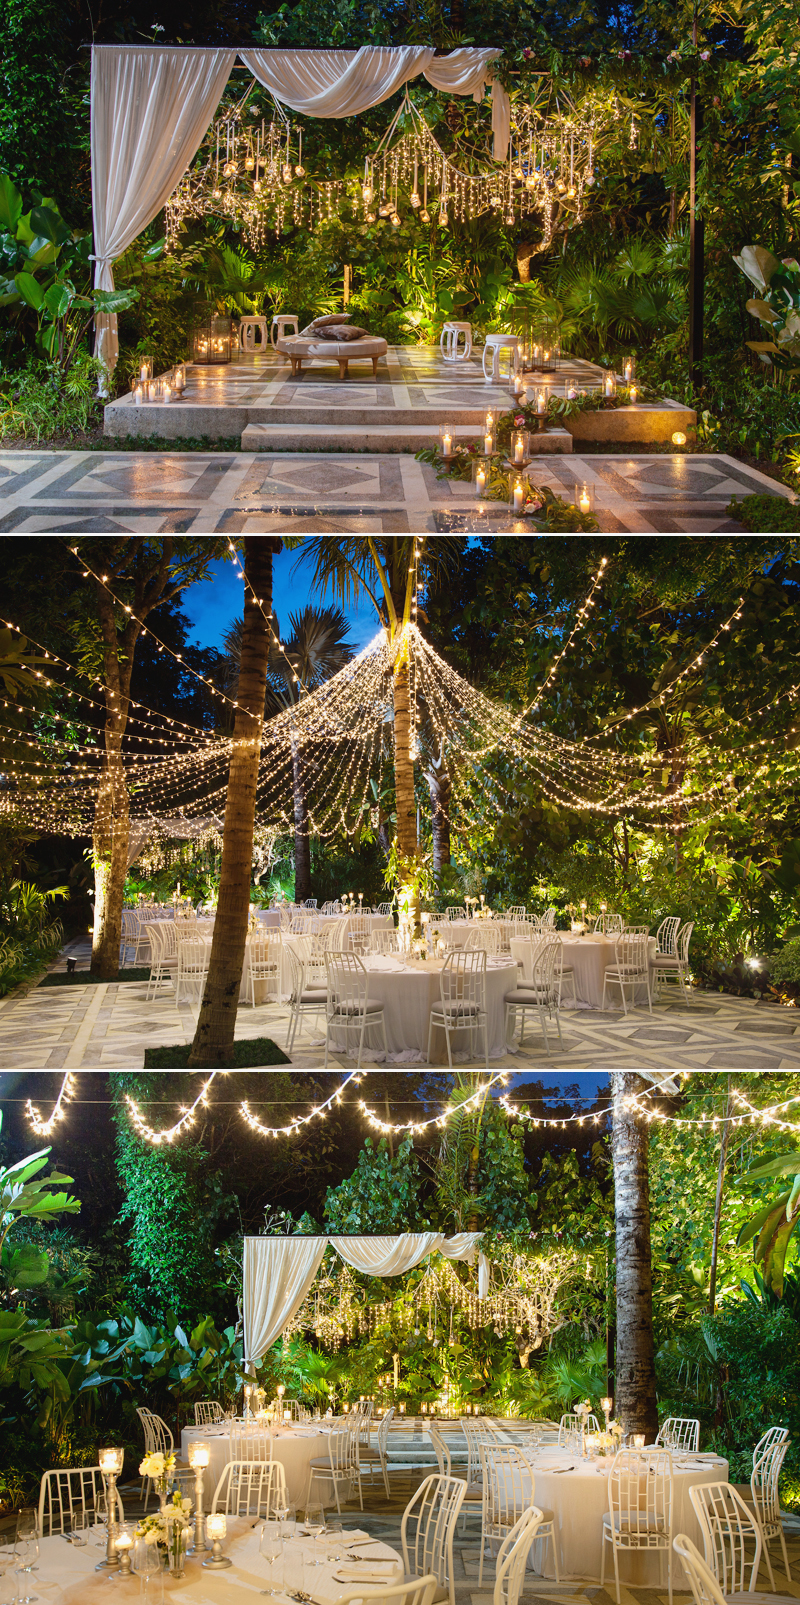 A fairytale inspired wedding venue tirtha bridal opens for Places for outdoor weddings